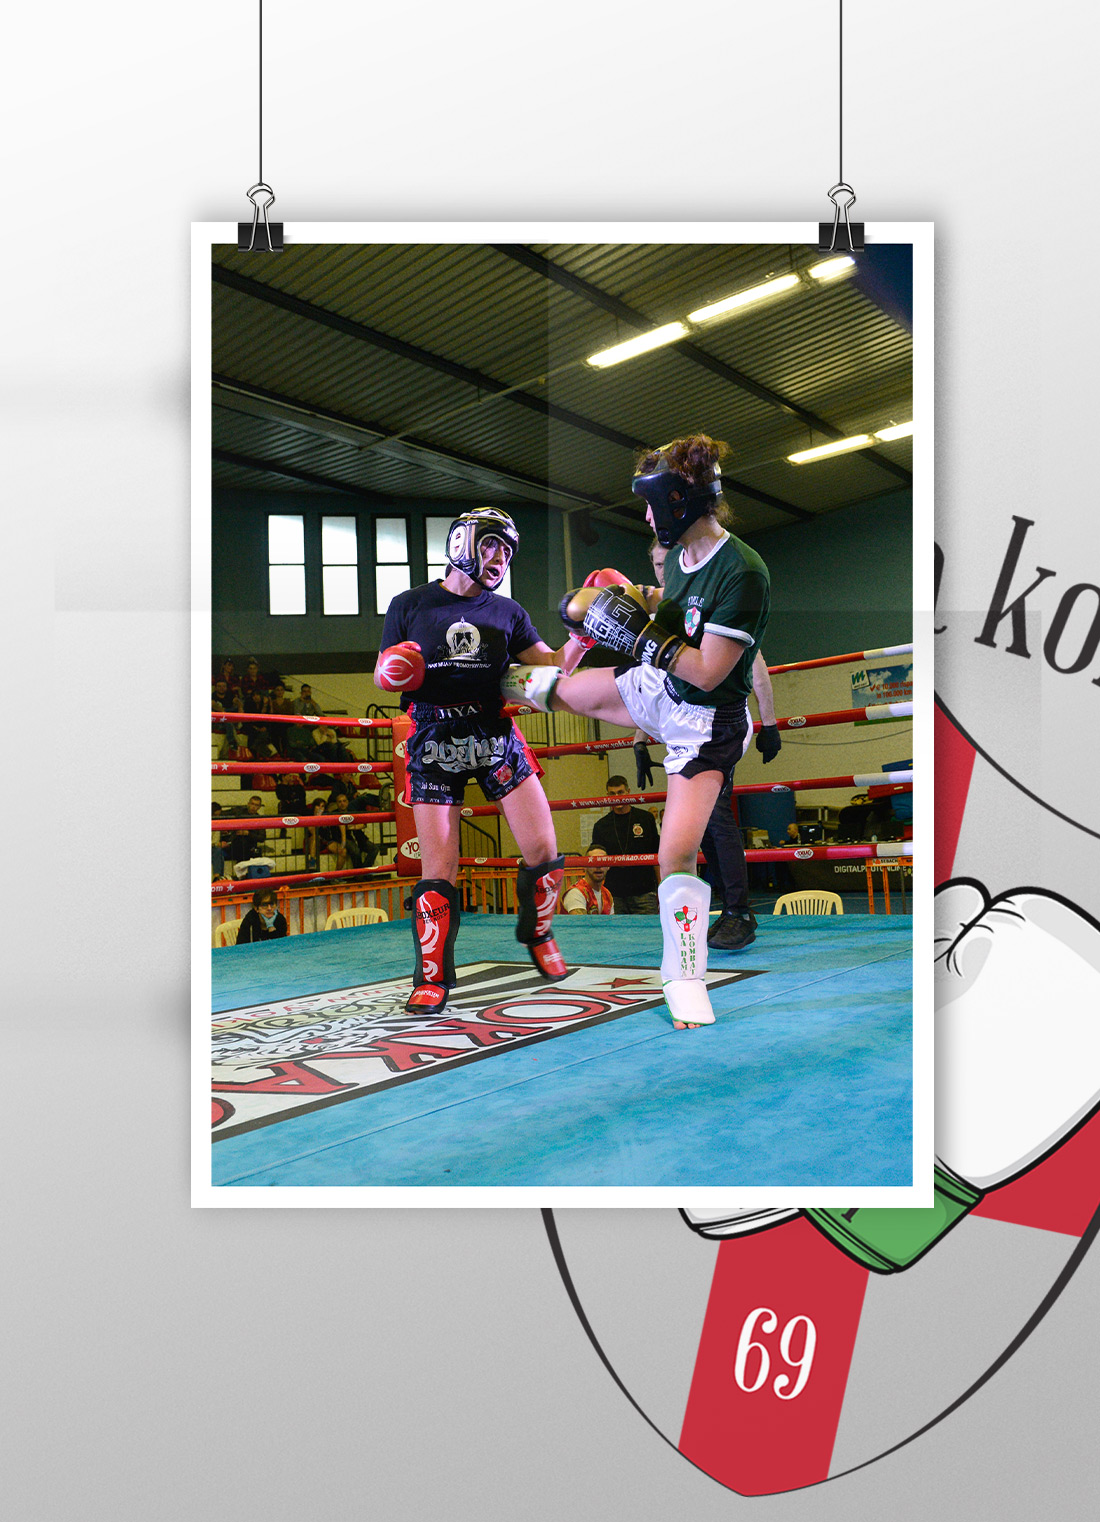 jay suu fighting day, la dama kombat, savate, genova